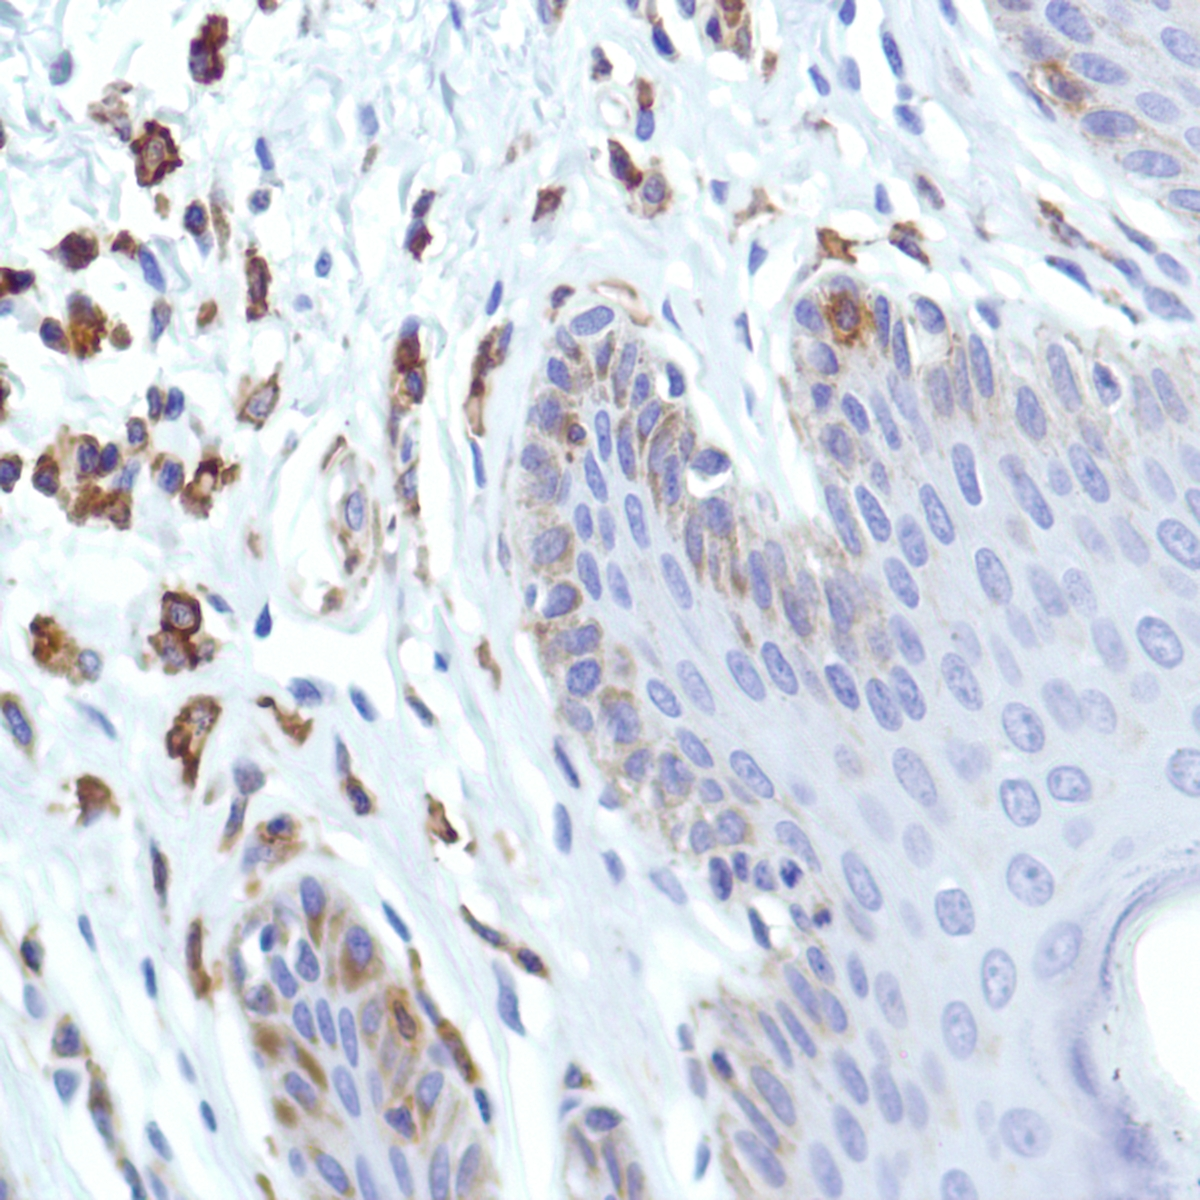 Human Skin stained with anti-CSF-1R antibody